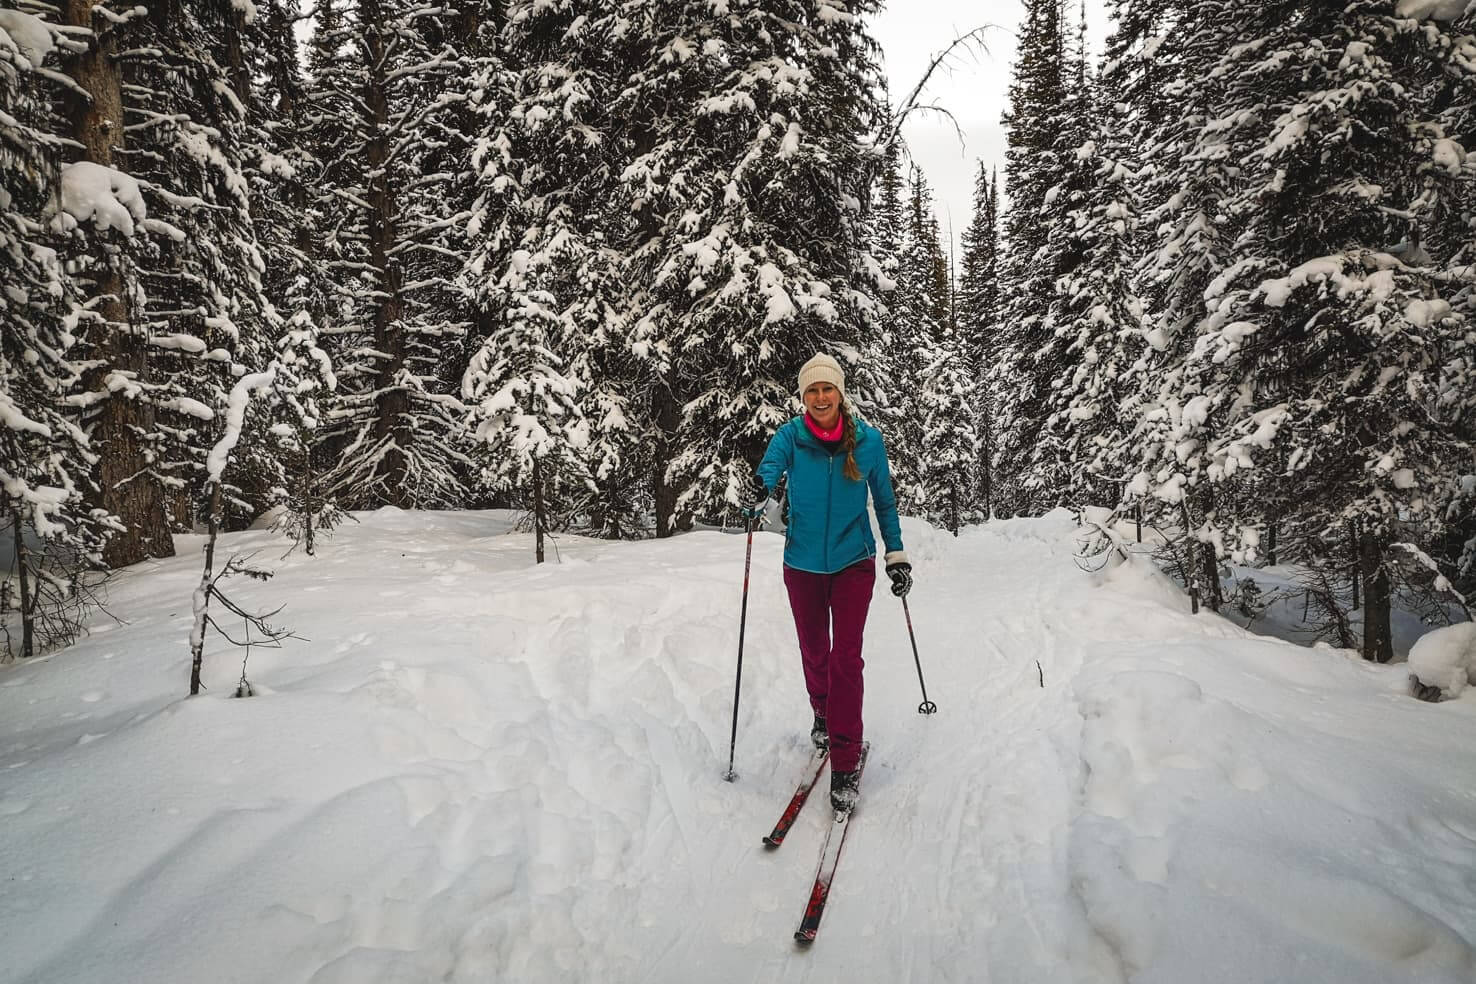 Things to do in Fernie, BC - 19 Go cross country skiing